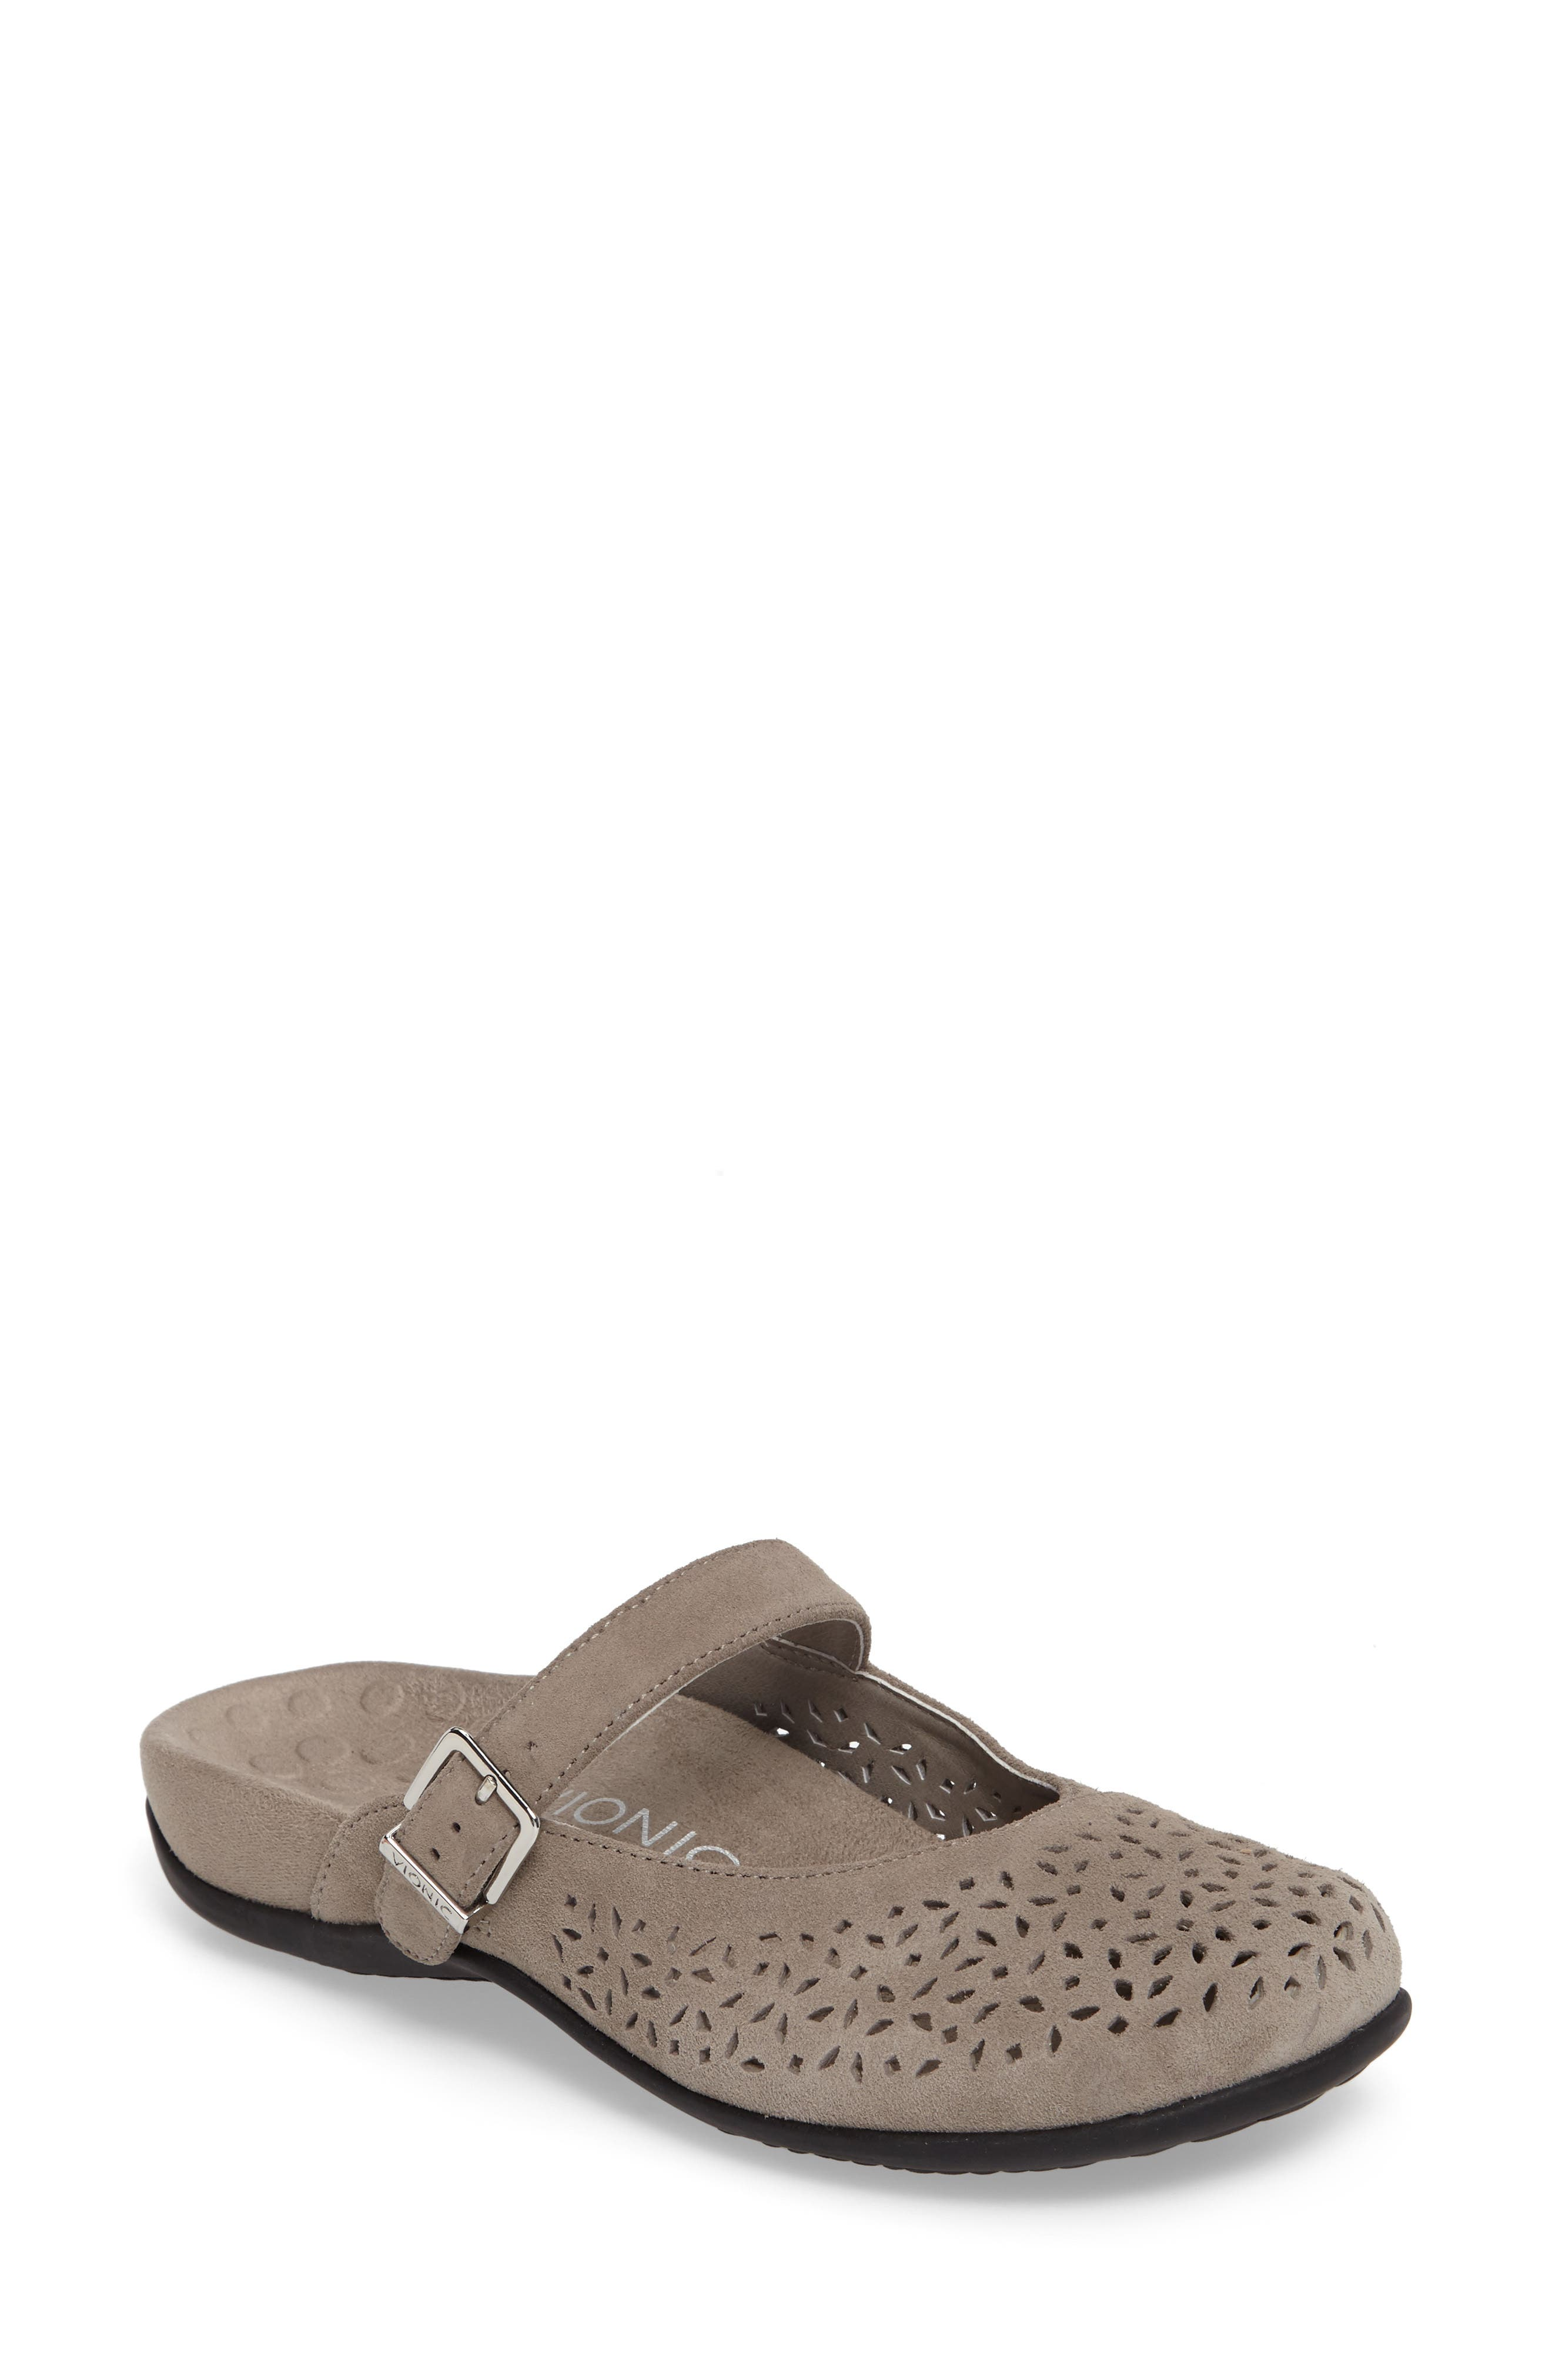 Vionic Rest Lidia Perforated Mary Jane Mule (Women)